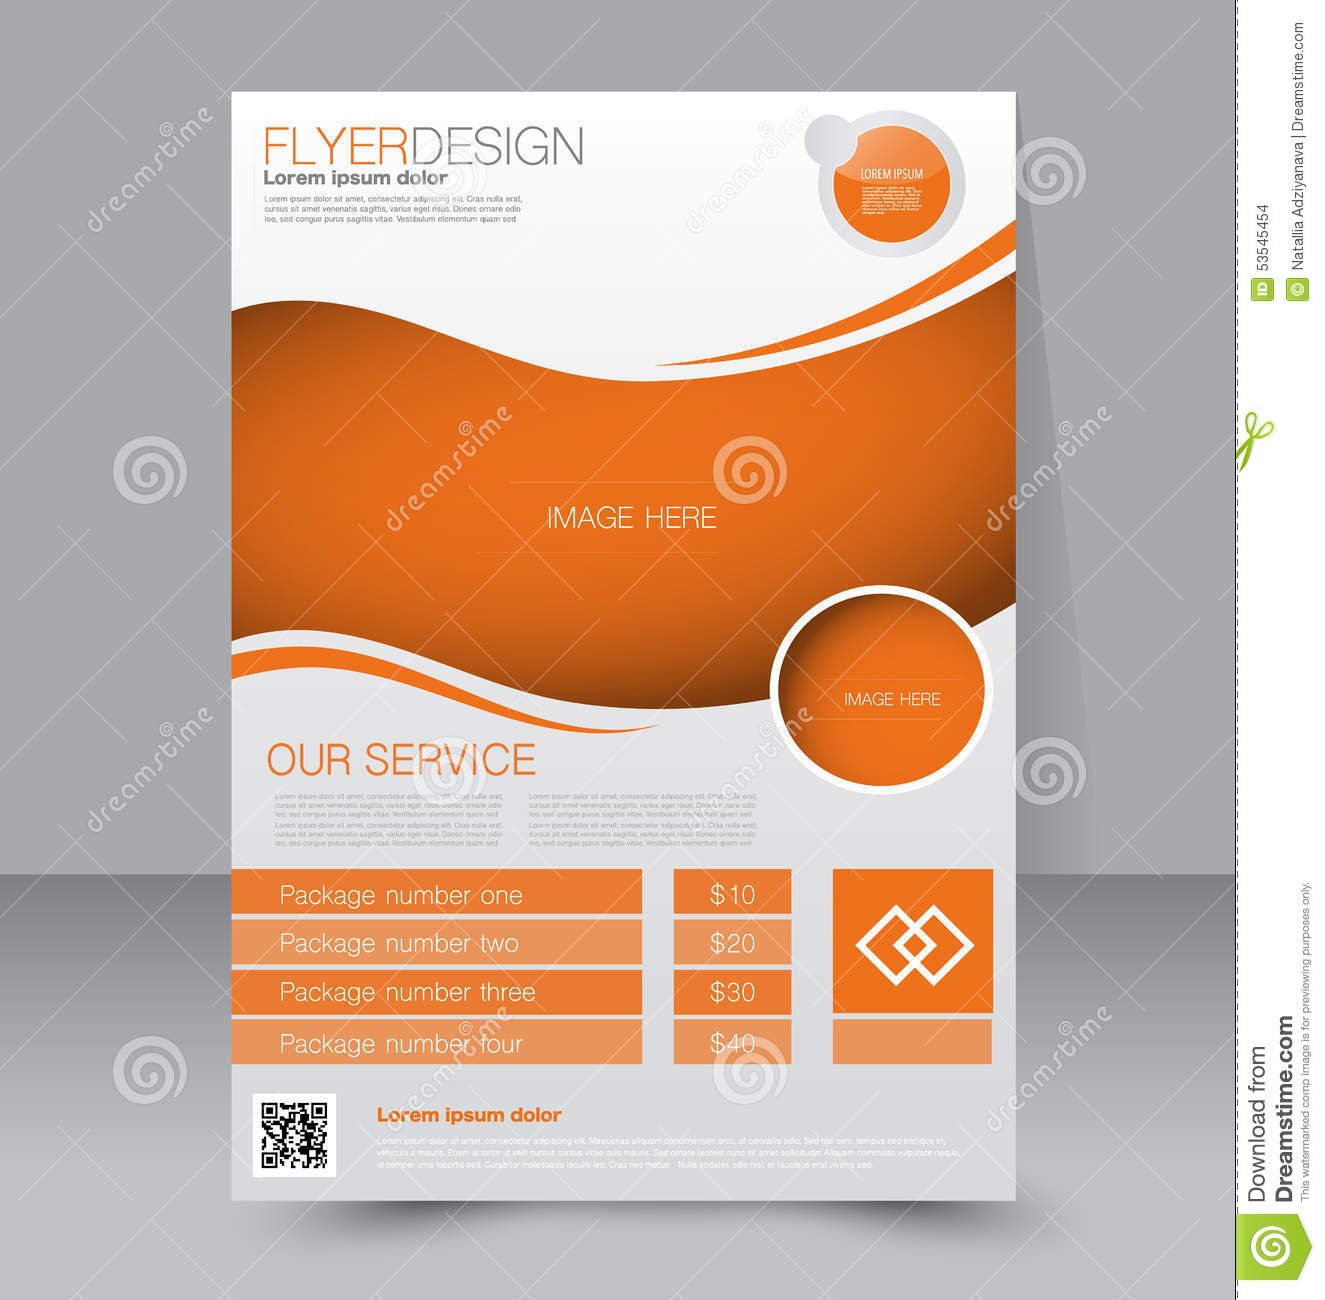 Free Blank Business Flyer Templates: Flyer Template. Business Brochure. Editable A4 Poster